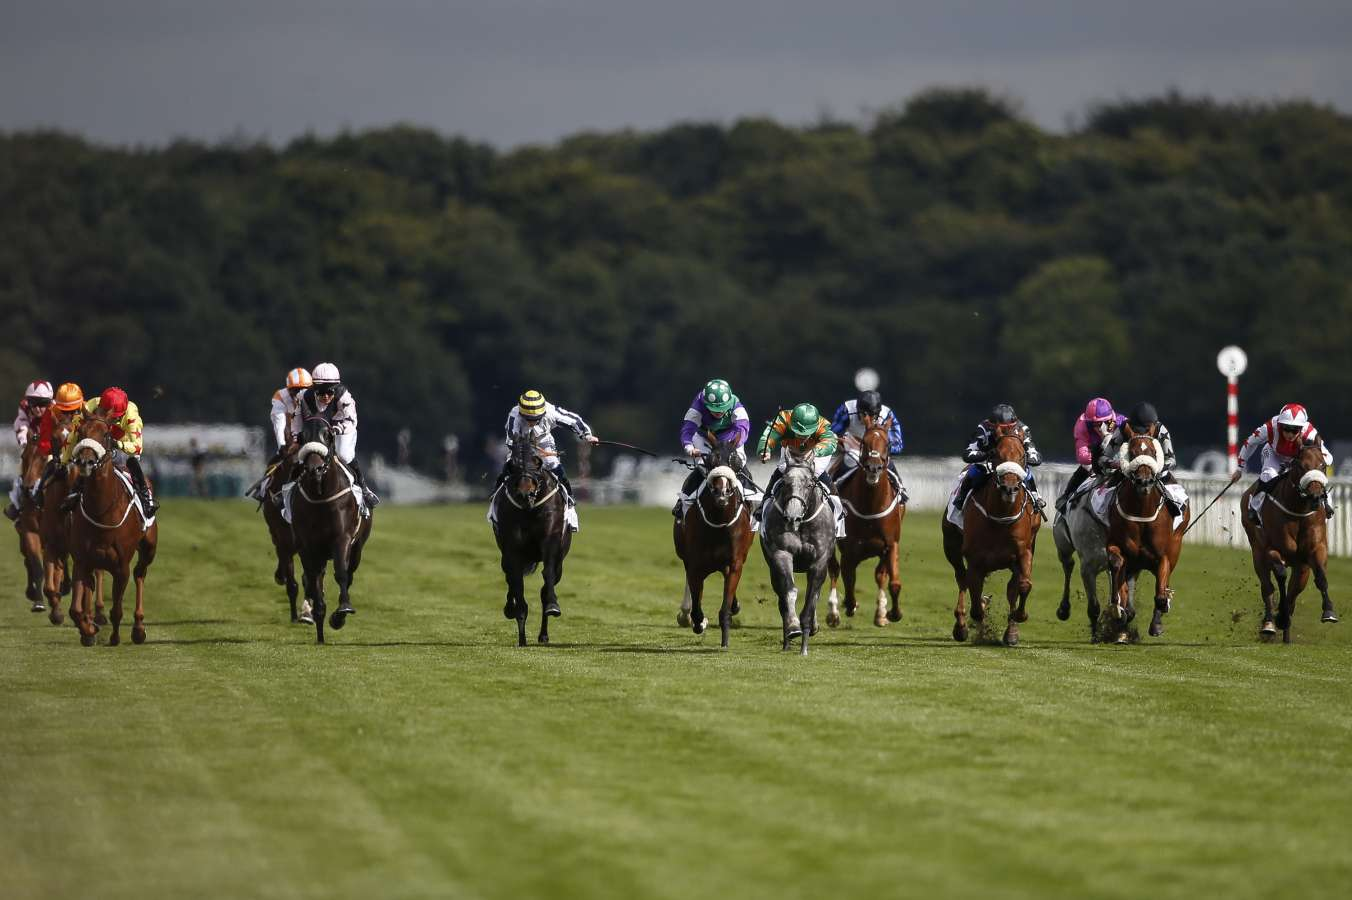 Horse racing canceled in Britain over equine flu outbreak